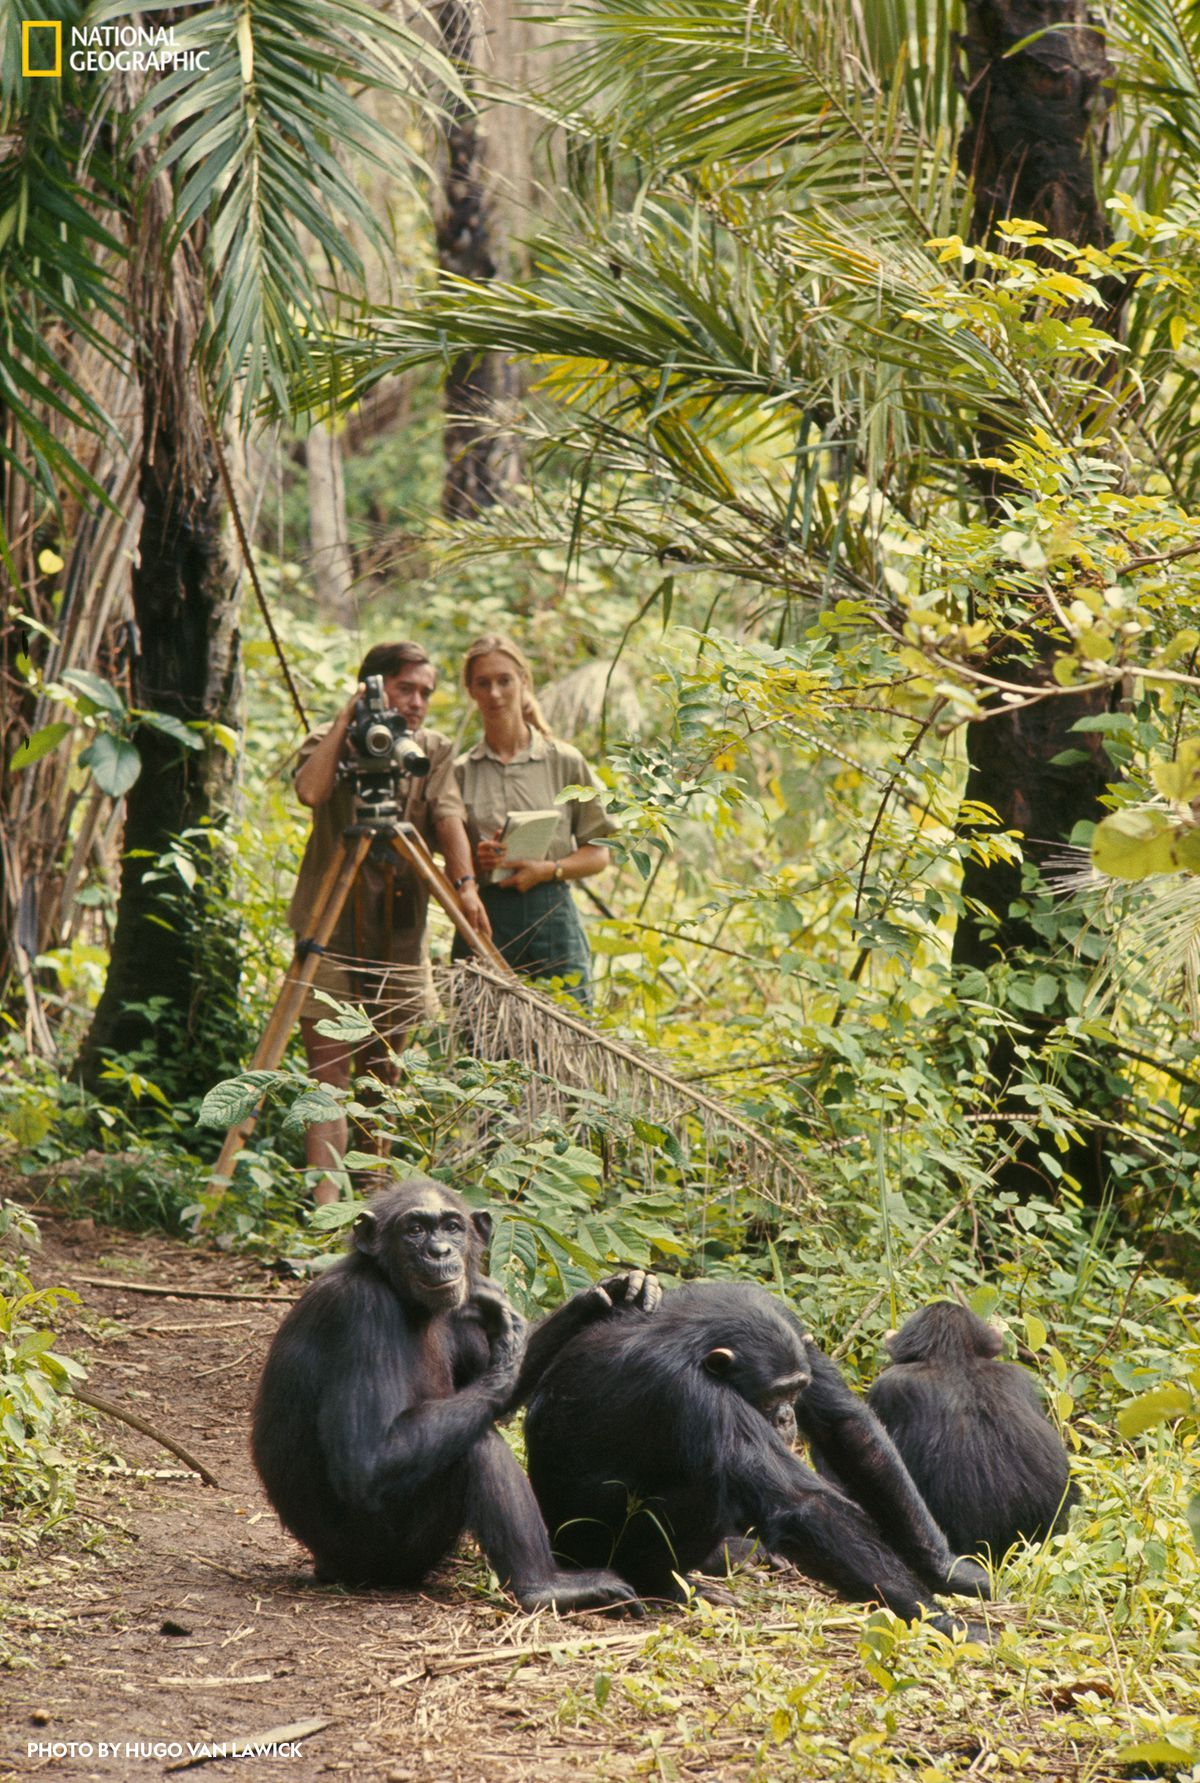 """A new exhibit at the Field Museum, """"Becoming Jane: The Evolution of Jane Goodall,"""" follows her journey from her childhood in England to a career as a passionate scientist studying chimpanzees in Africa."""